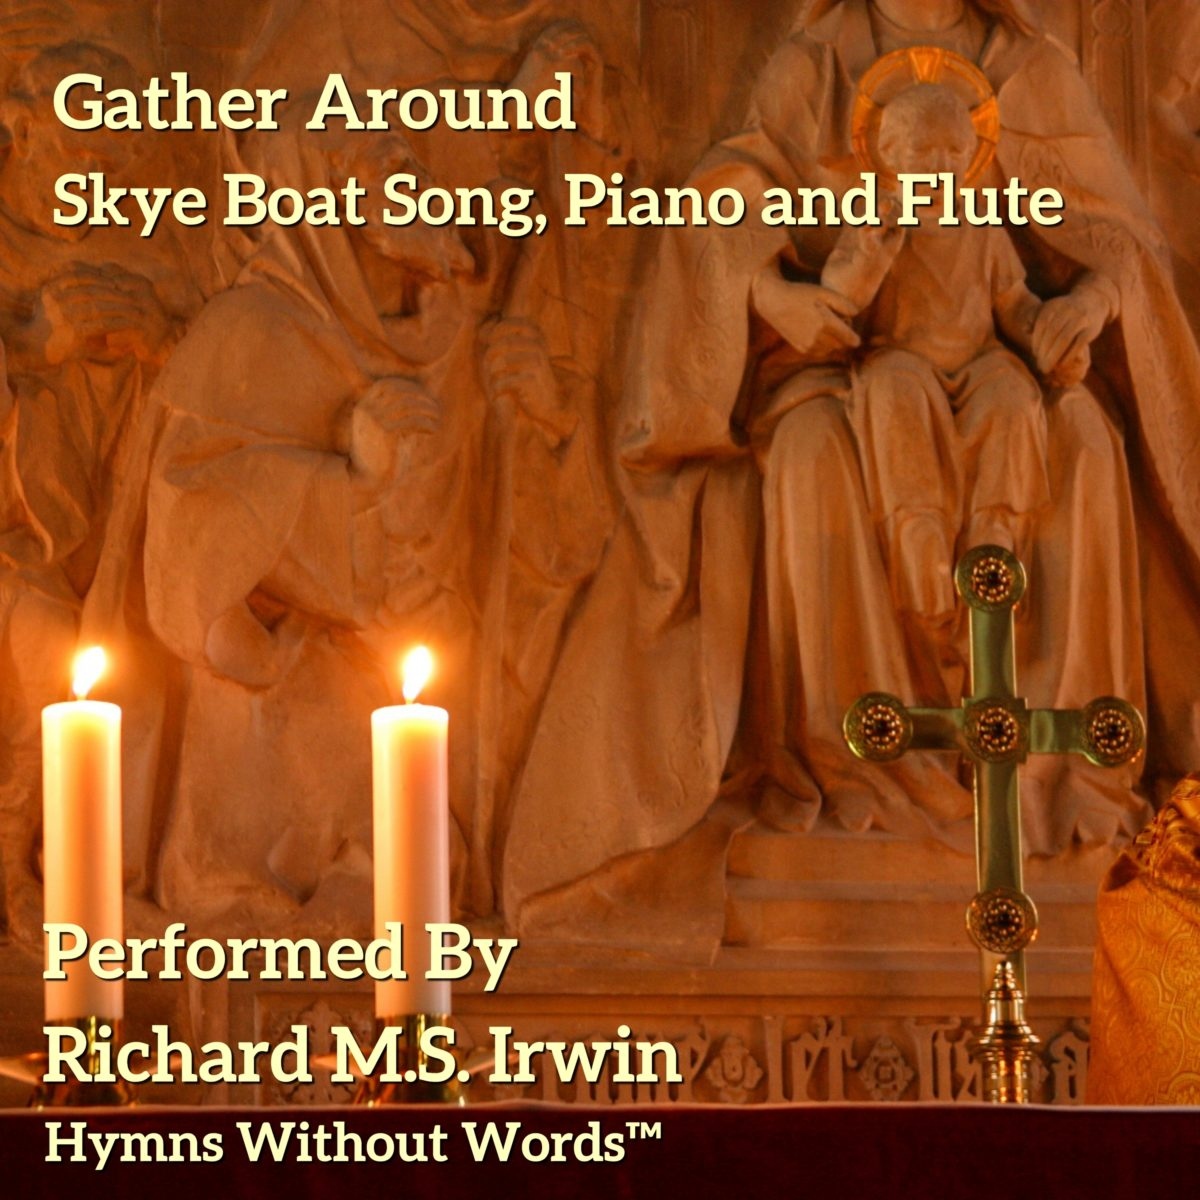 Gather Around, For The Table Is Spread (Skye Boat Song) – Piano and Flute